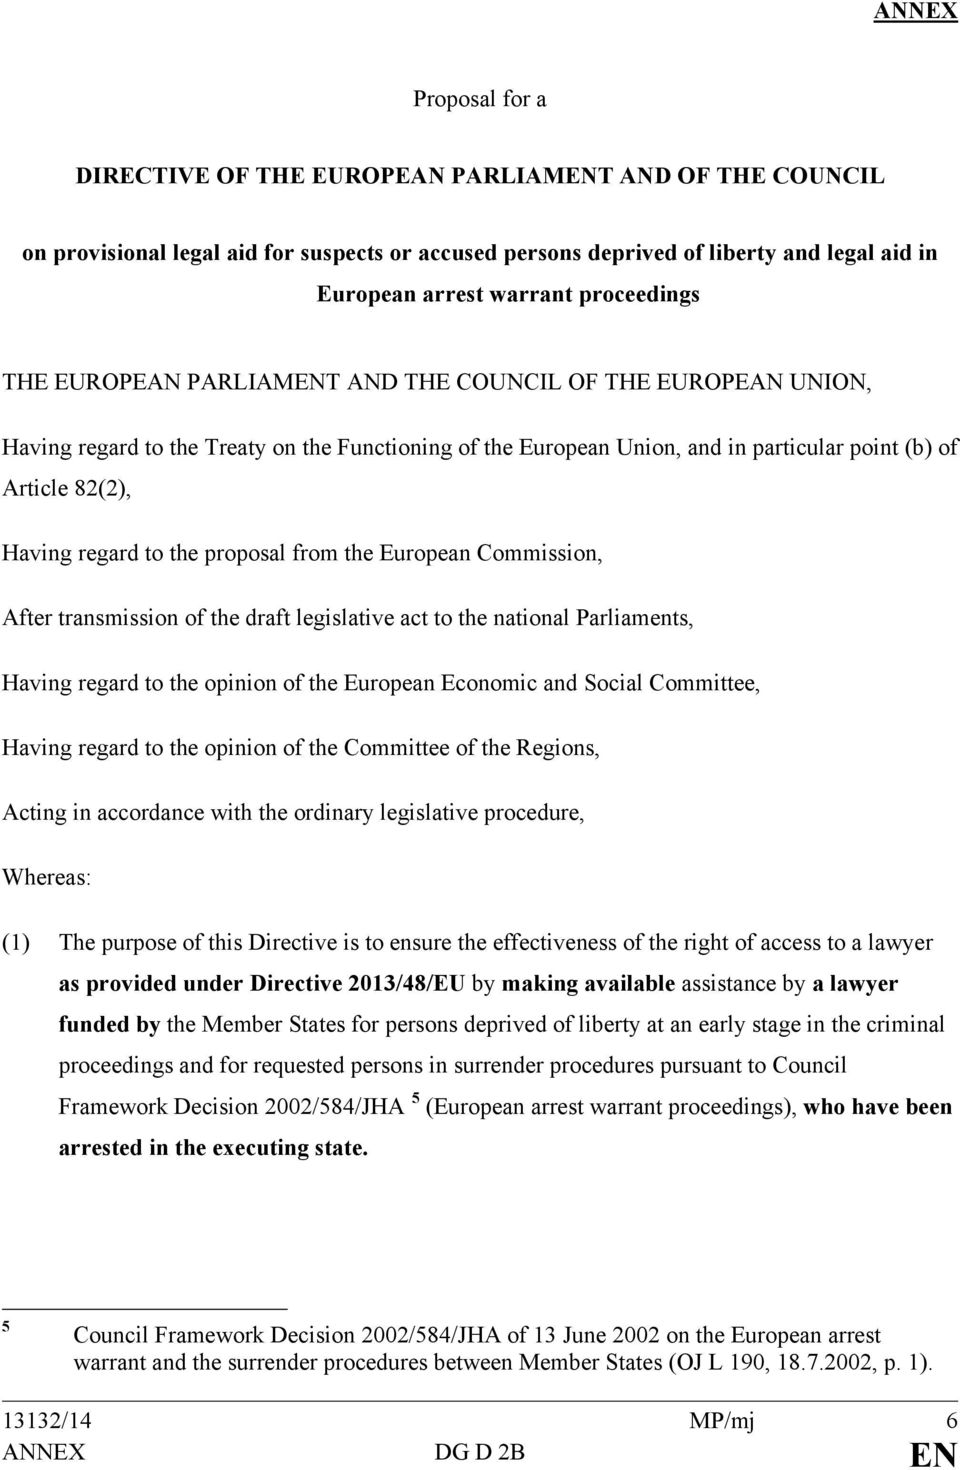 regard to the proposal from the European Commission, After transmission of the draft legislative act to the national Parliaments, Having regard to the opinion of the European Economic and Social